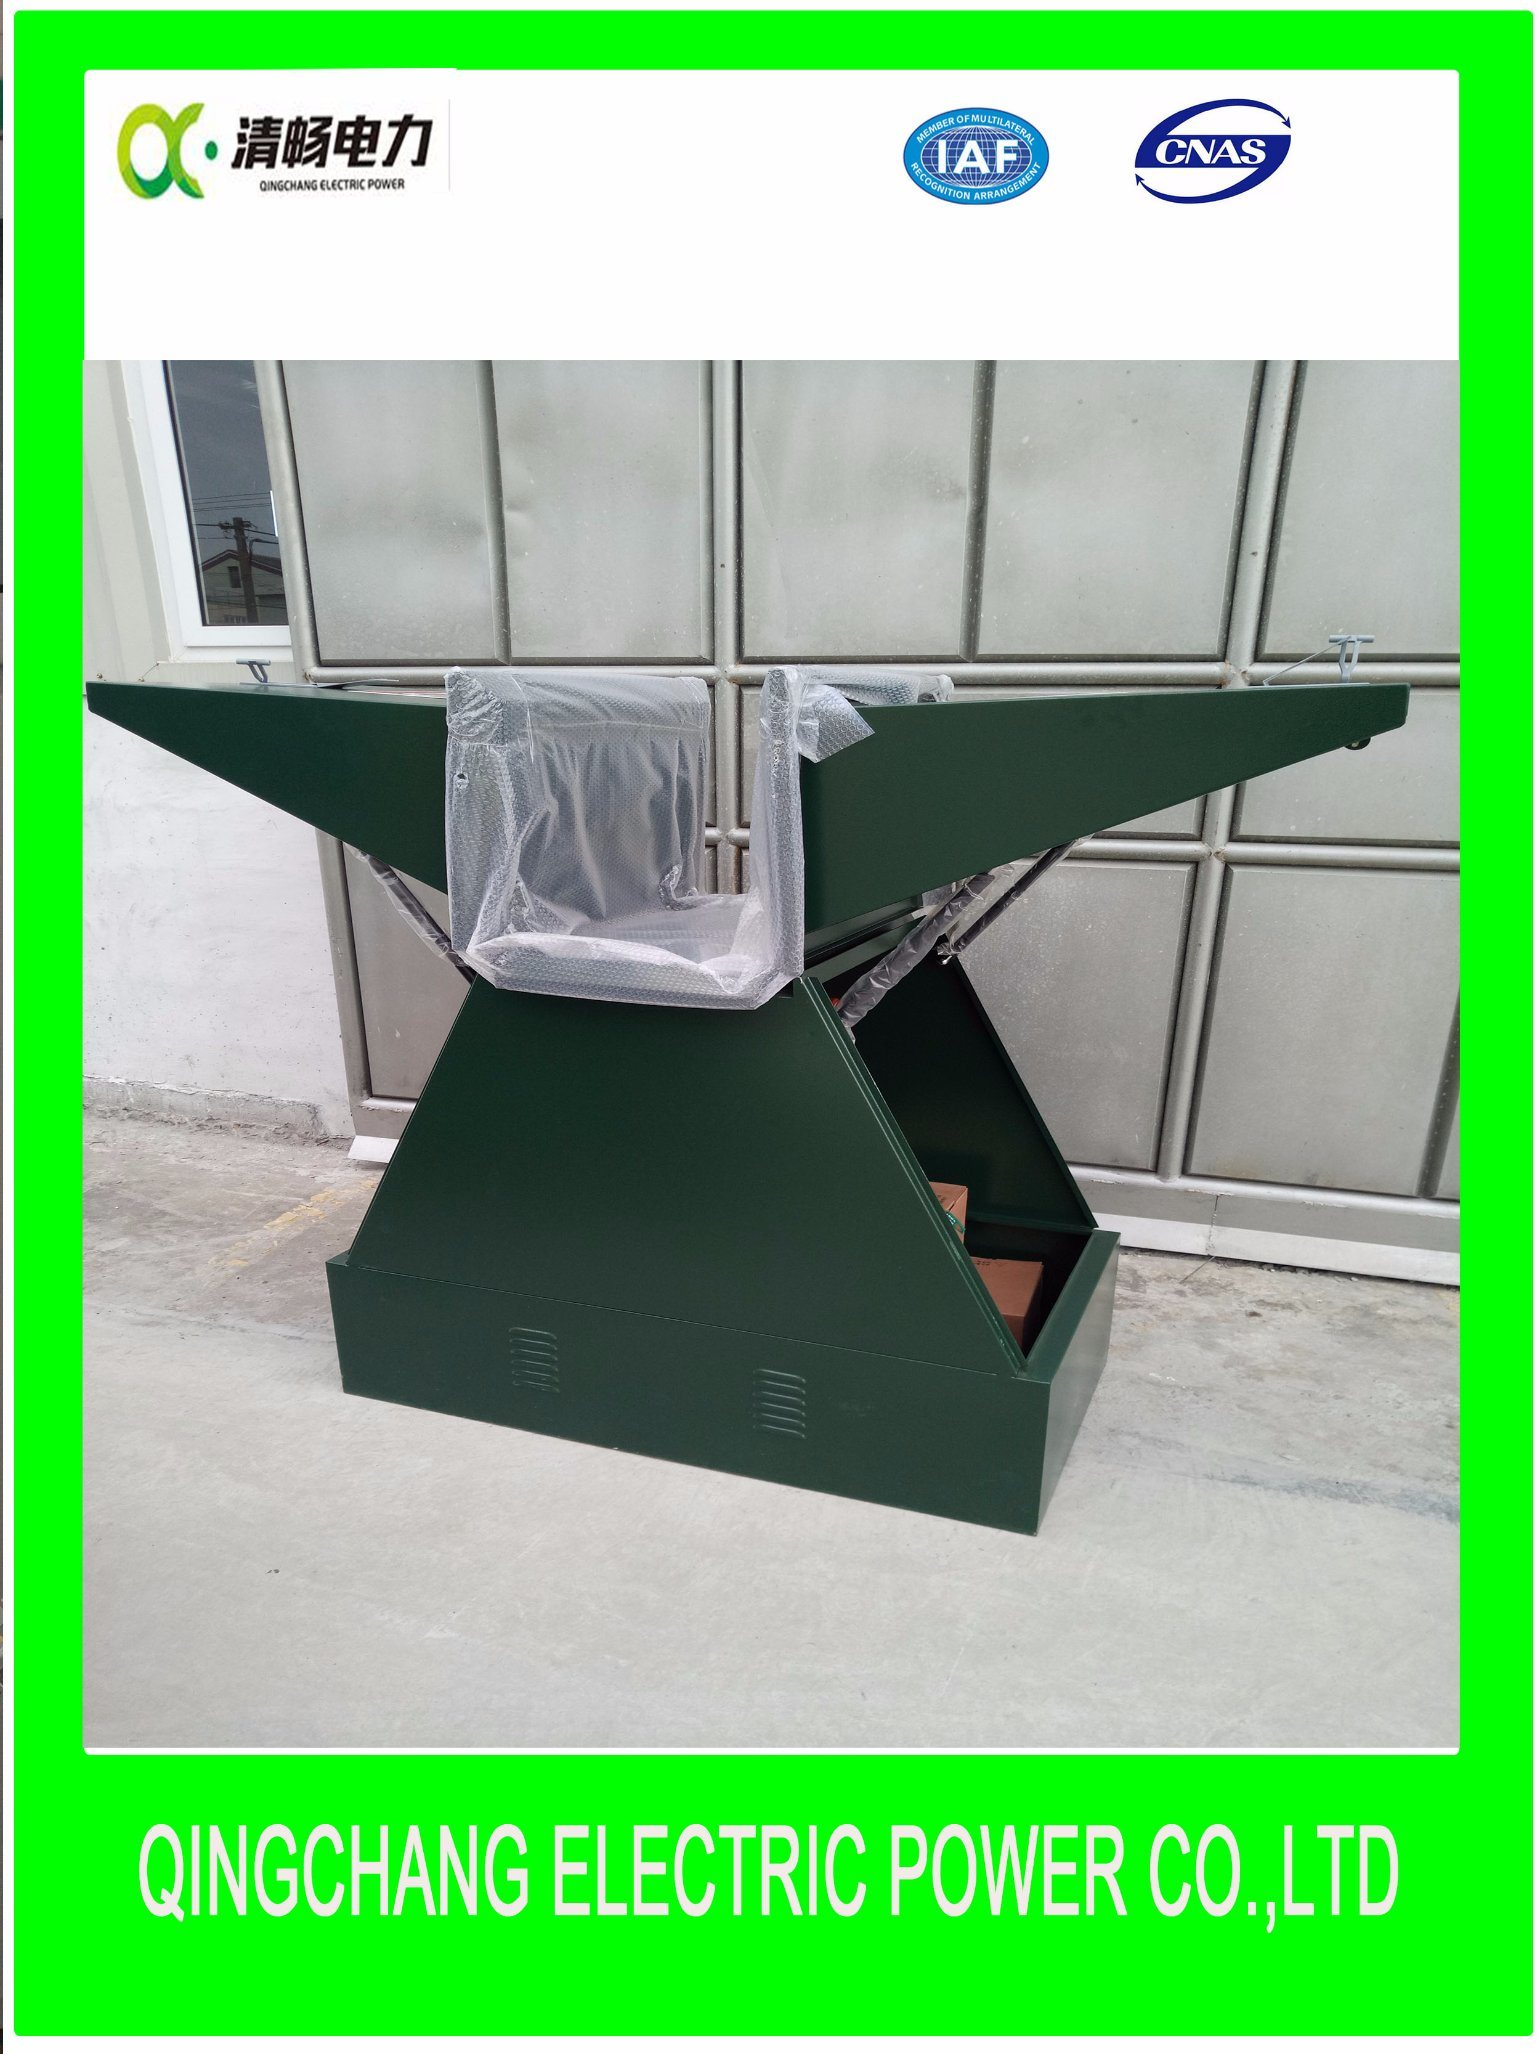 Outdoor Cable Branch Box (outdoor ring main unit, cable junction box)